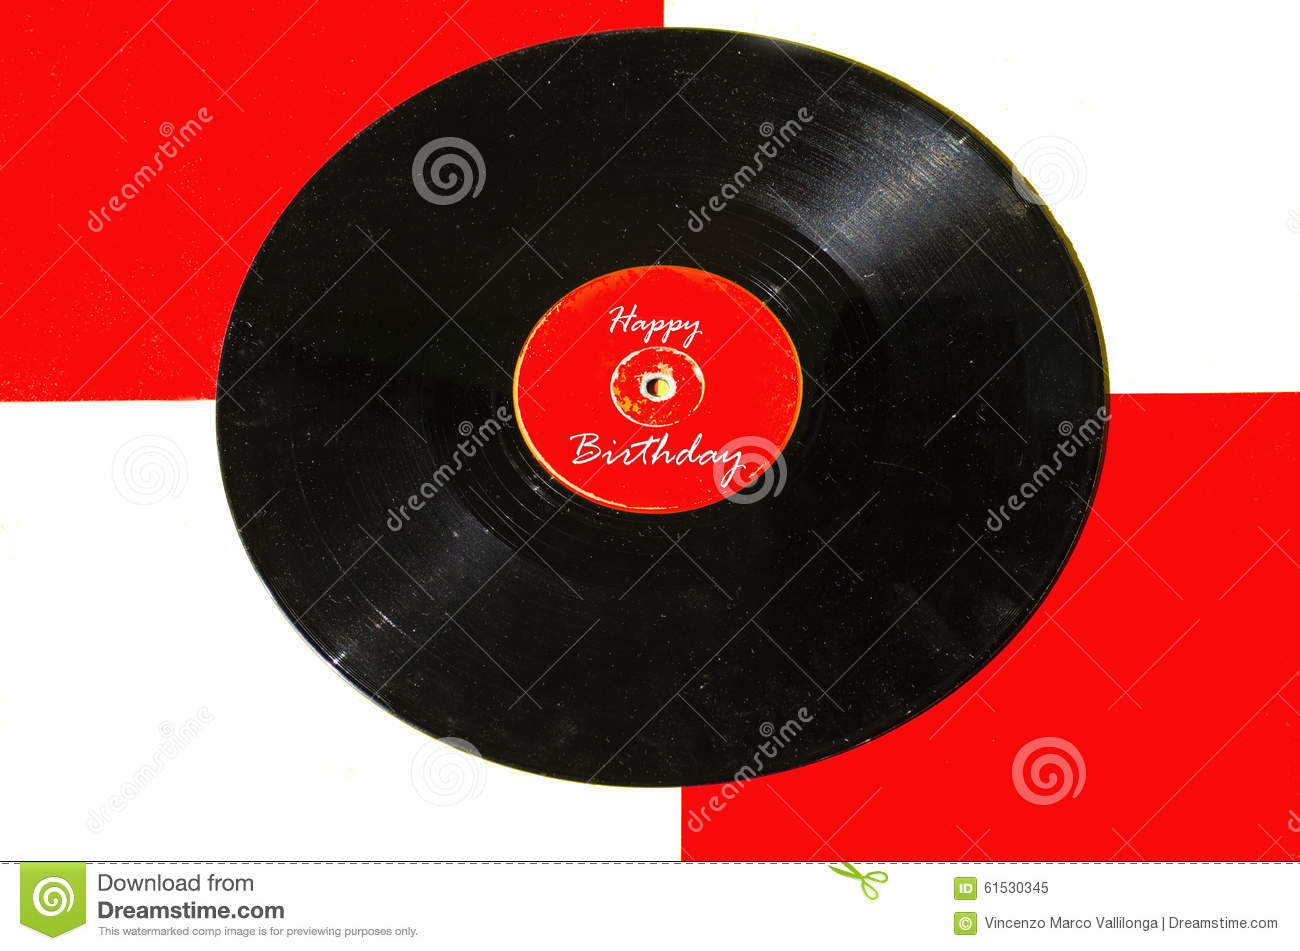 Happy Birthday Vinyl And Colored Background Stock Image